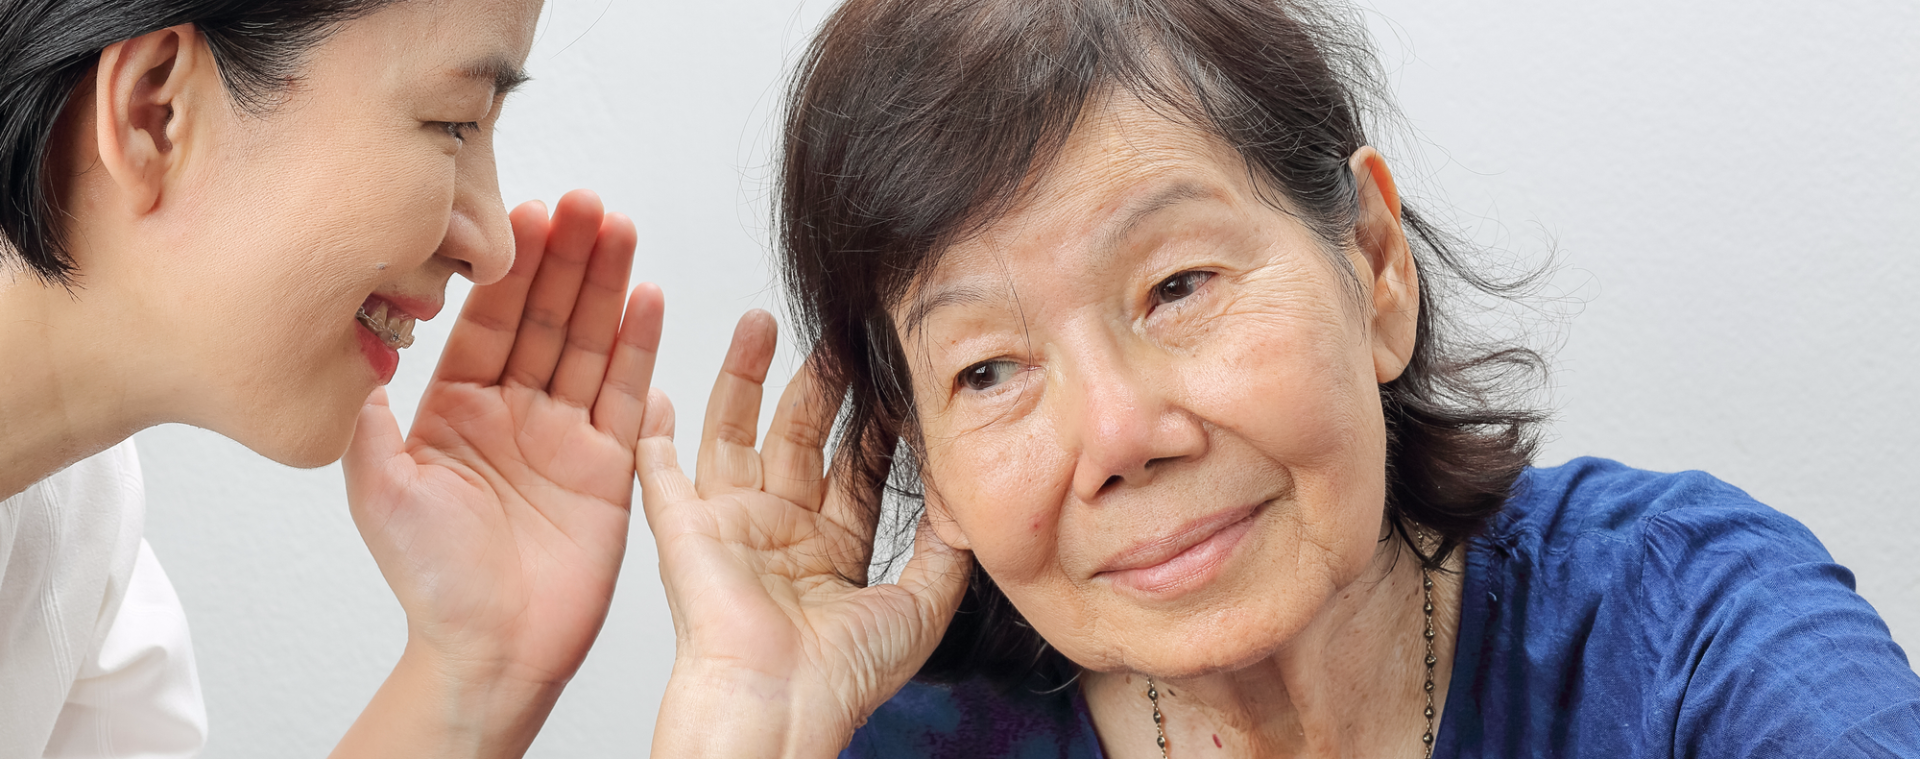 Progressive Hearing Loss with Age: Is It Inevitable?